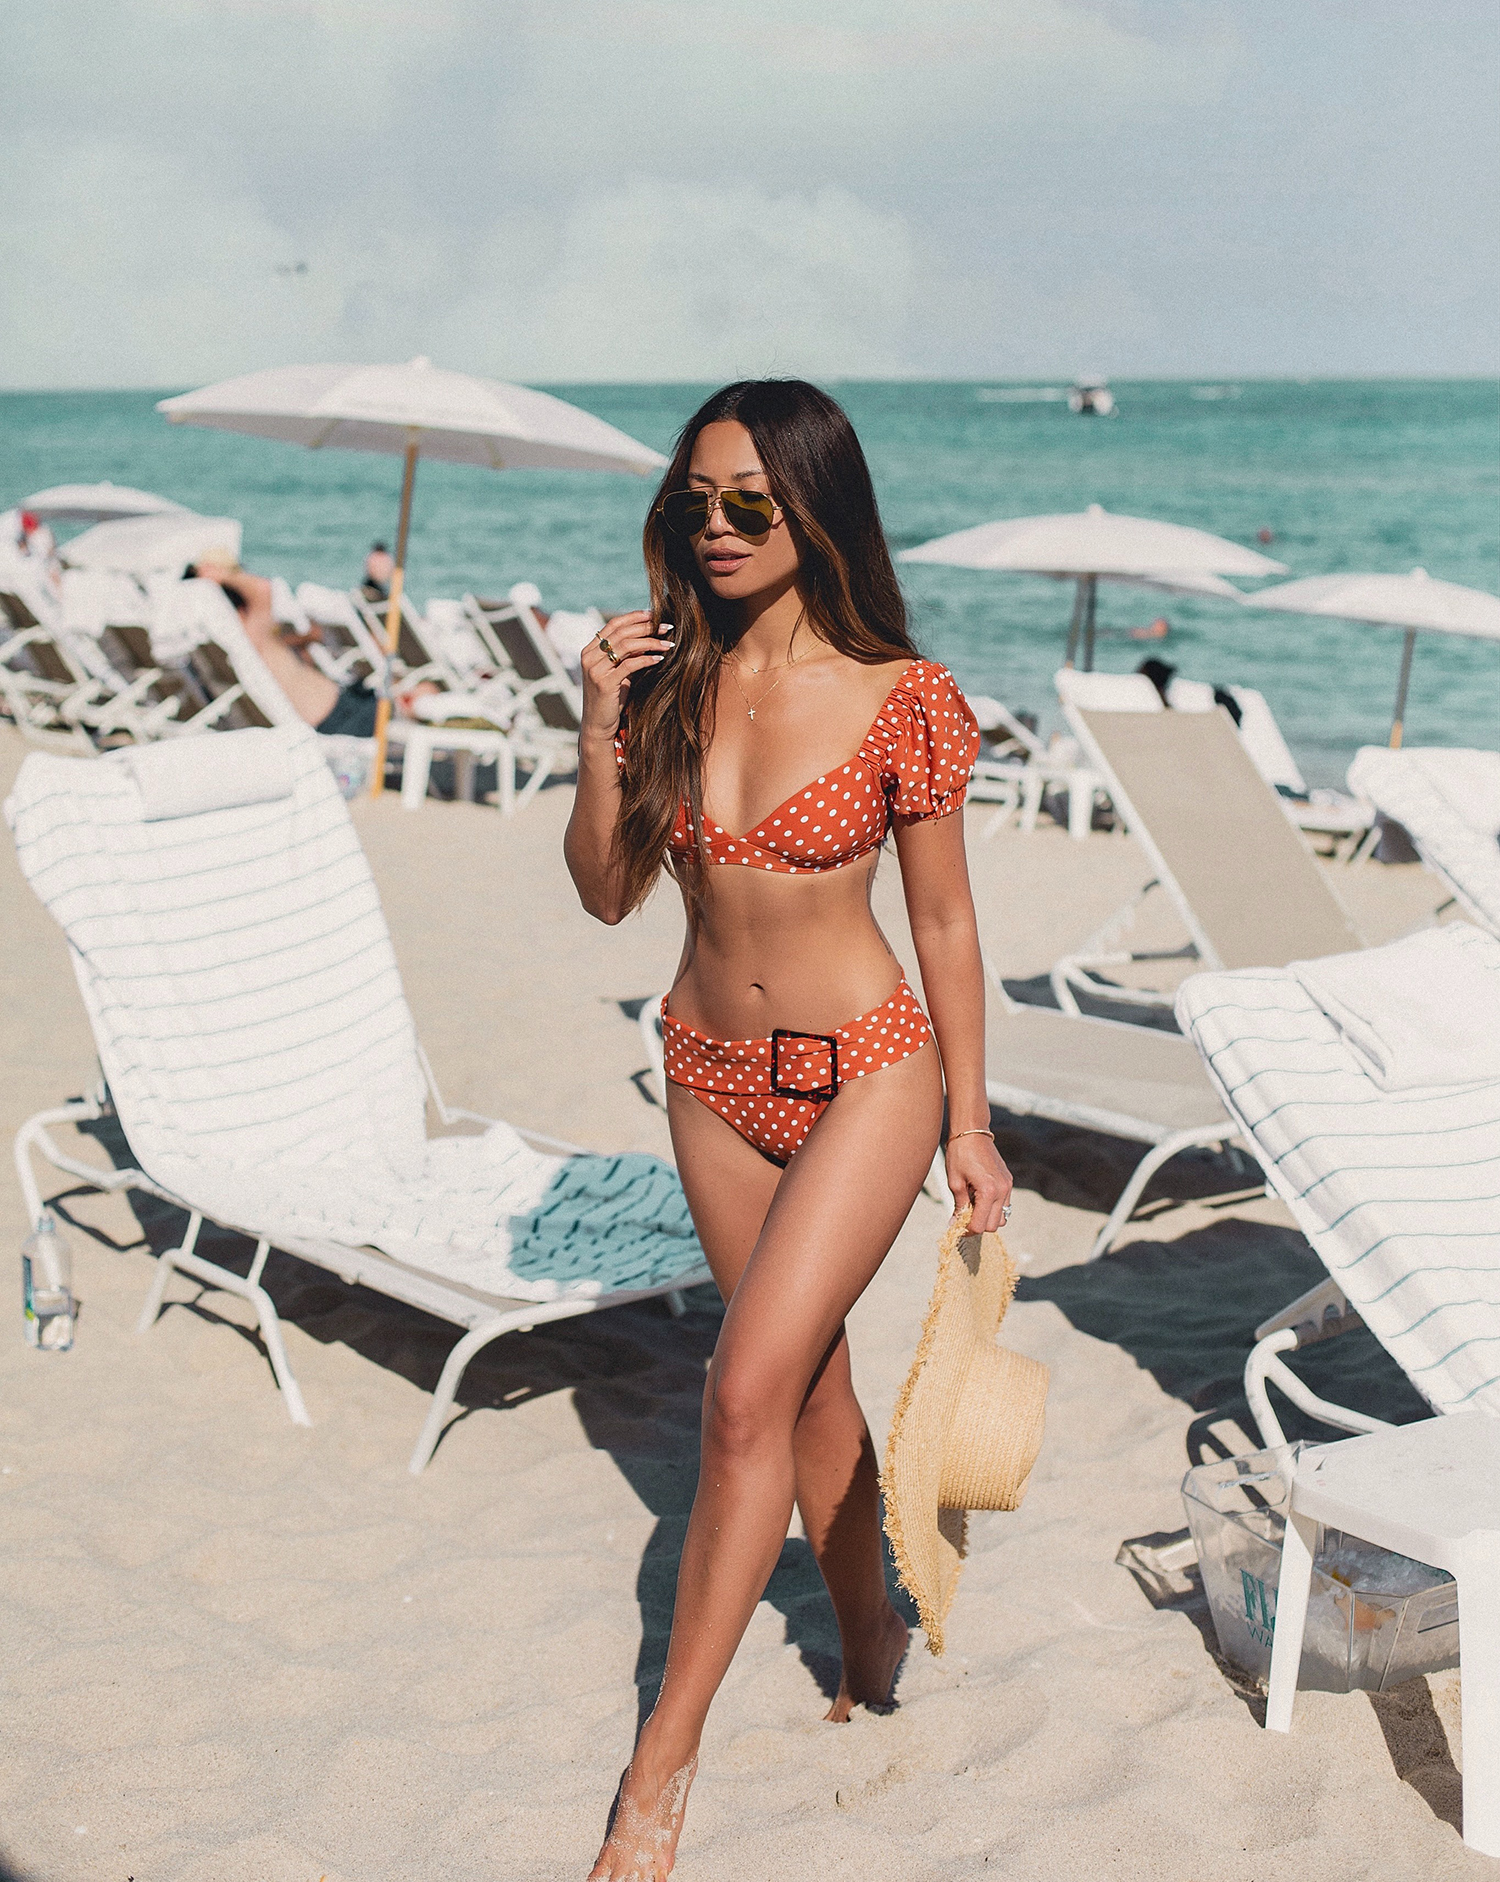 Jessi Malay wearing who wore what bikini